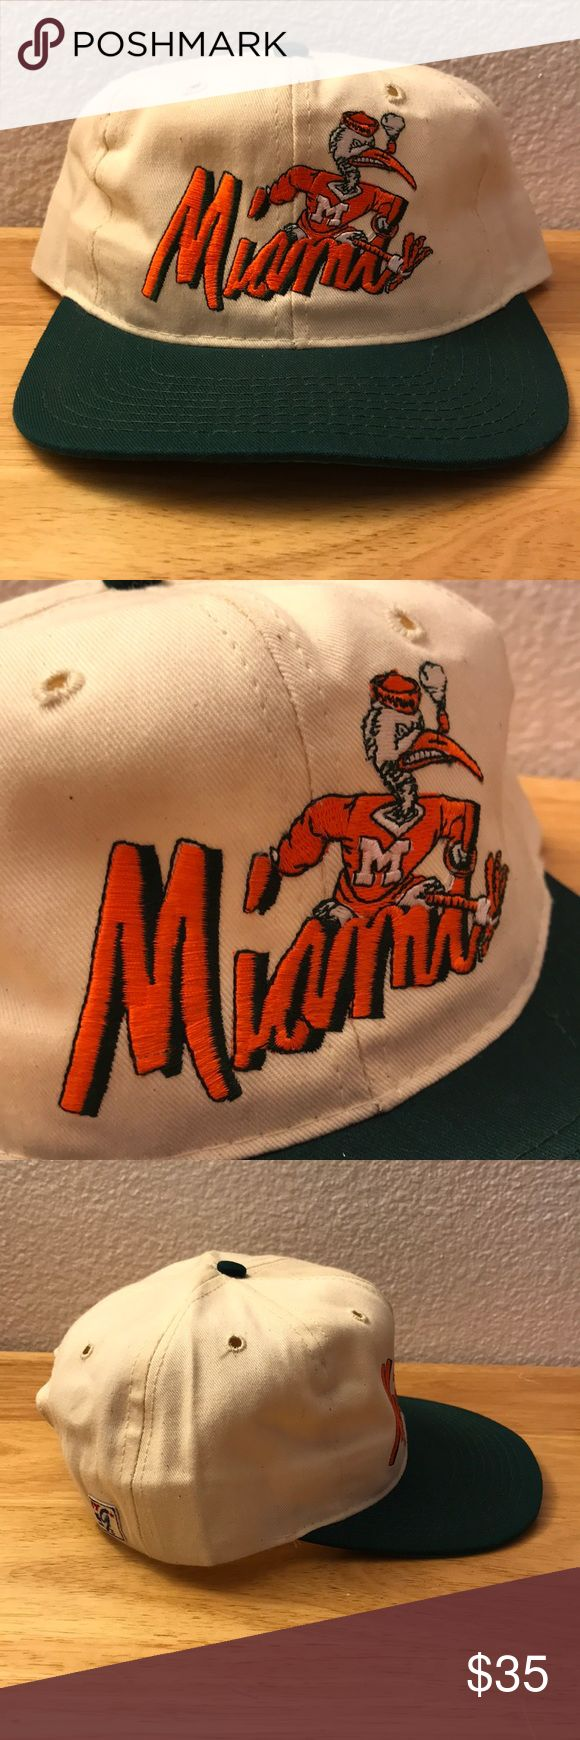 Vintage The Game Miami Hurricanes Hat Vintage The Game Miami Hurricanes Hat, Brand New, Never Worn or Used, 🎄WILL SHIP IN ONE DAY🎄All bundles of 2 or more receive 20% off. Closet full of new, used and vintage Vans, Skate and surf companies, jewelry, phone cases, shoes and more. The Game Accessories Hats